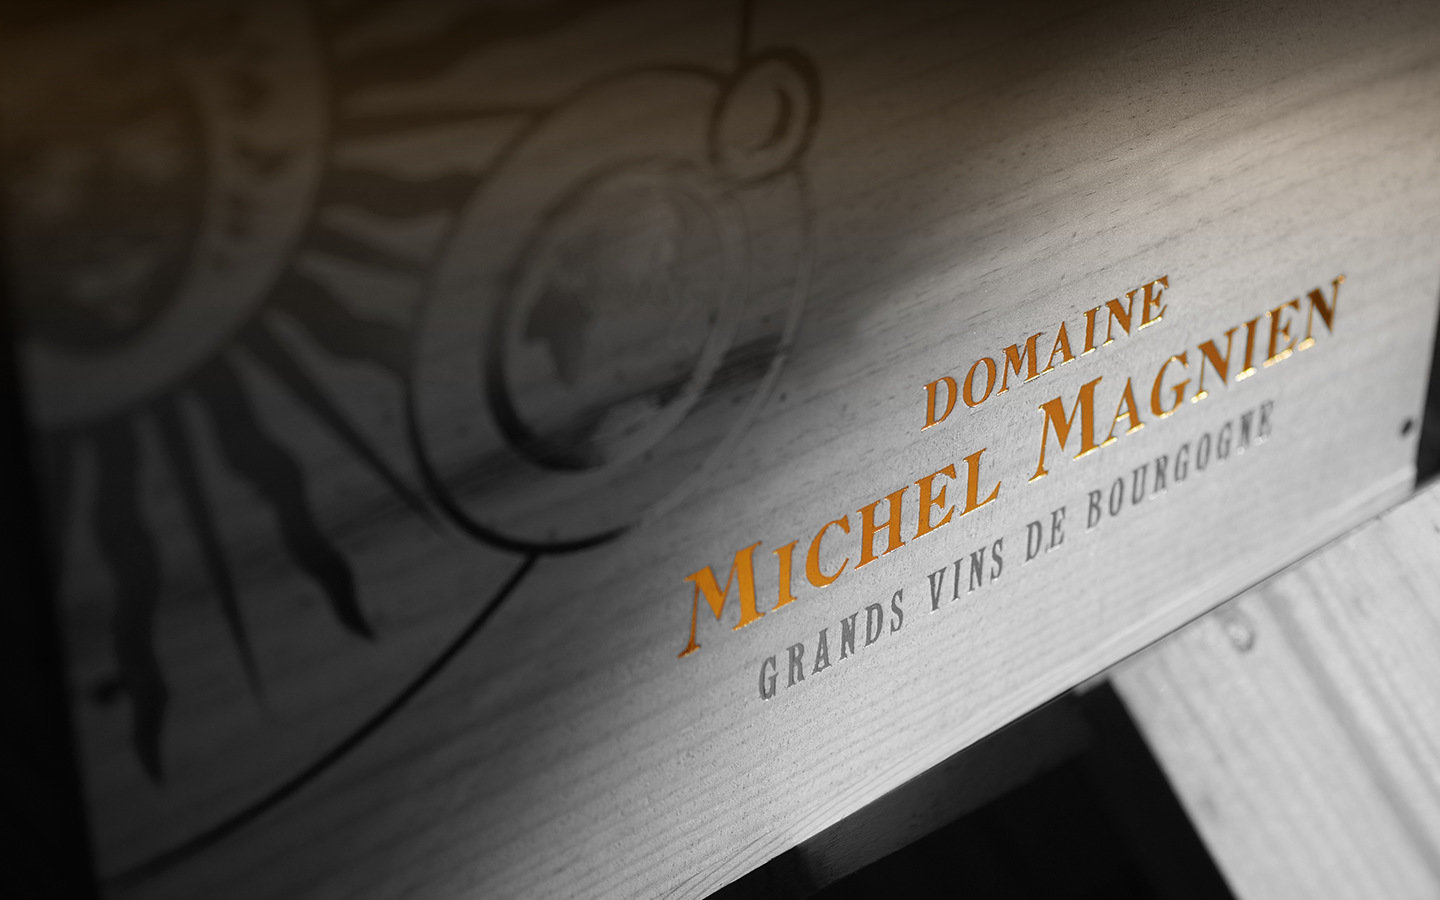 The wines of Domaine Michel Magnien